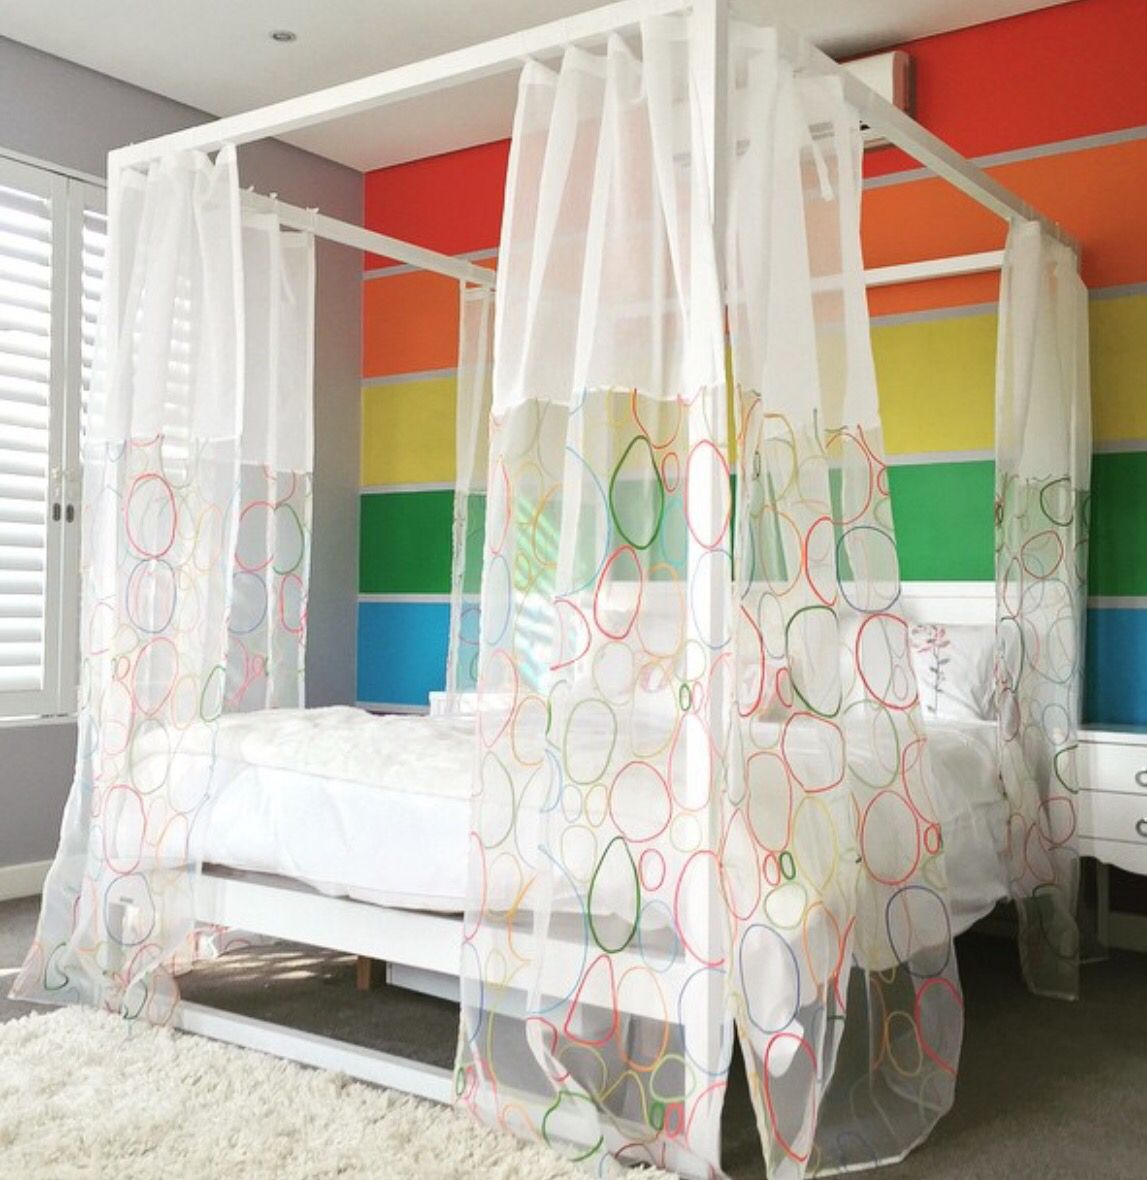 Canopy bed Canopy bed, Home decor, Home